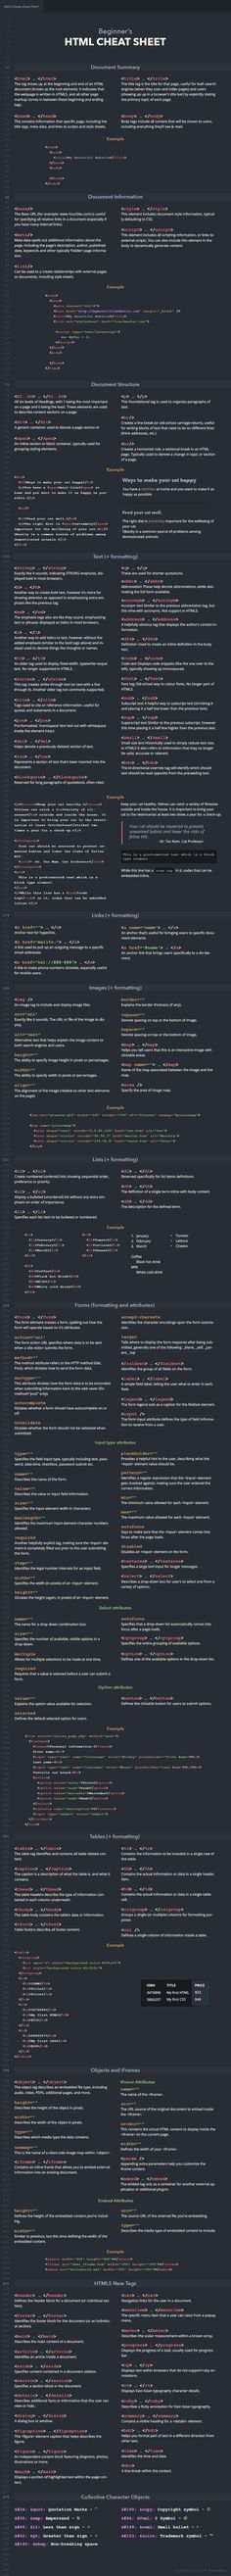 awesome HTML cheat sheet gives you a quick reference for commonly used tags,...